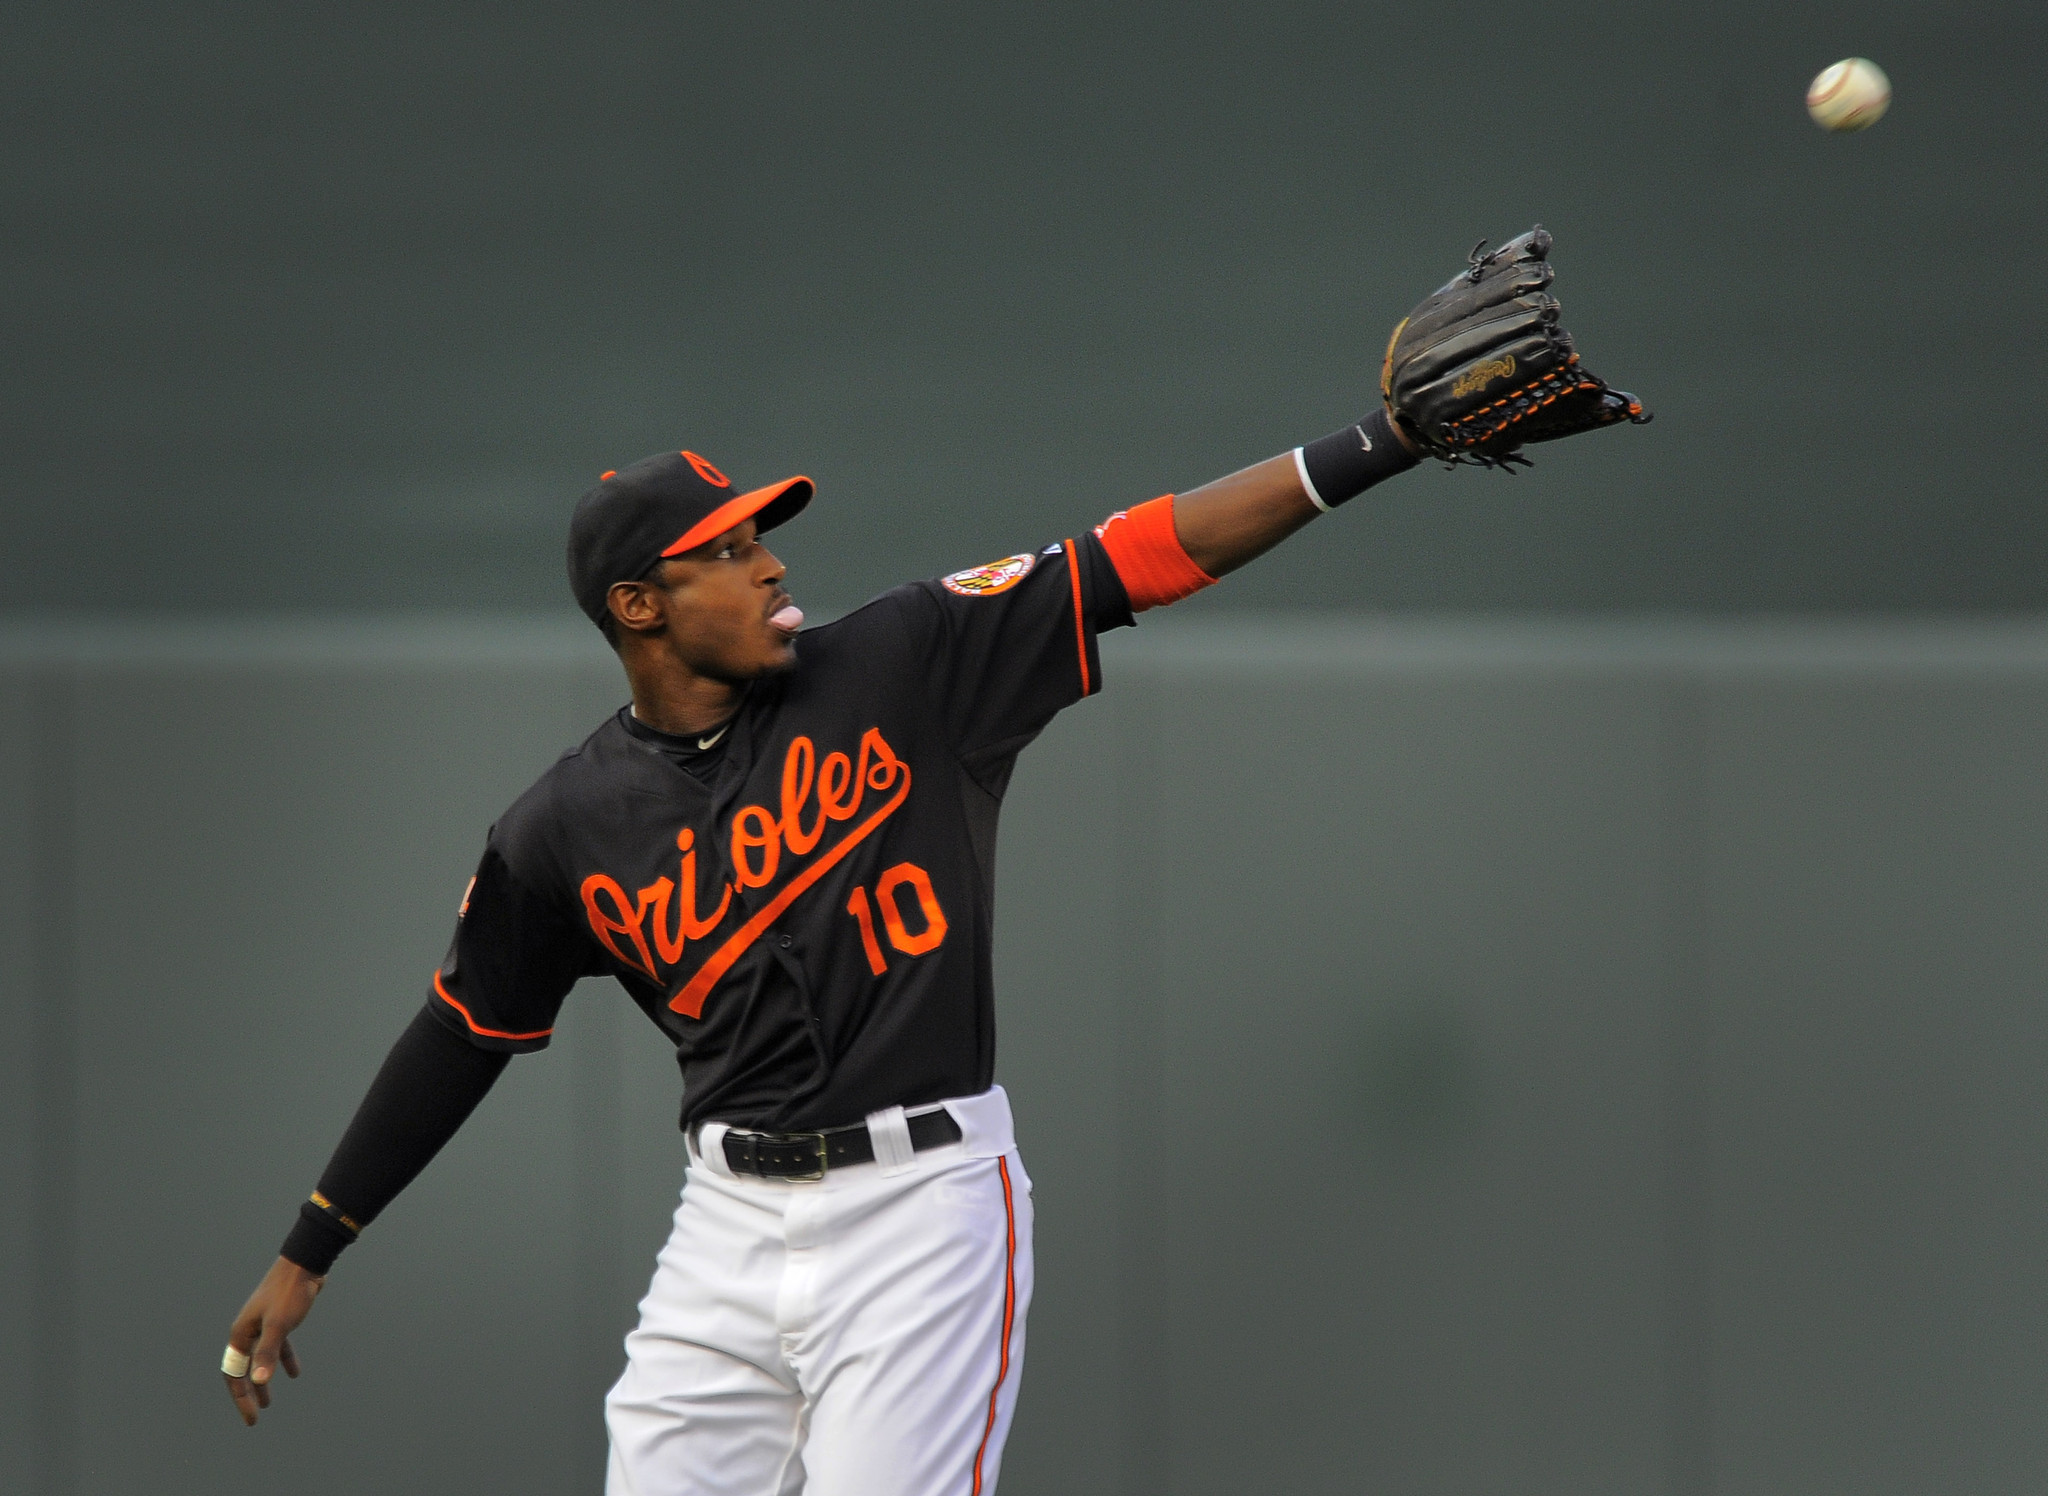 As Adam Jones likely nears final game with Orioles, he